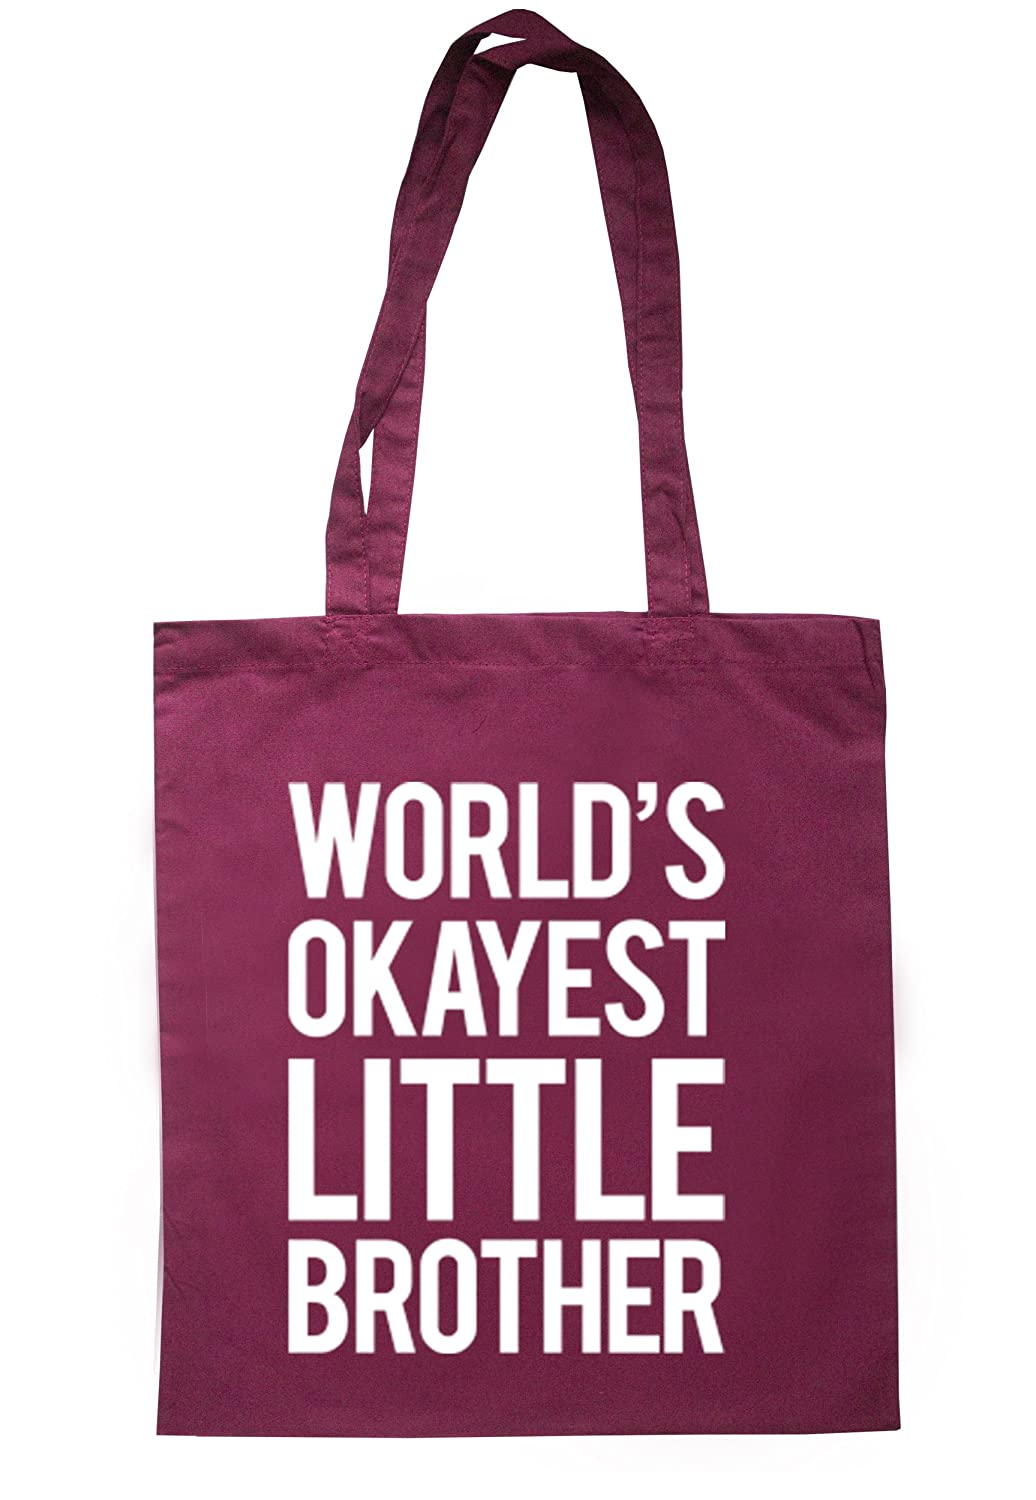 illustratedidentity Worlds Okayest Little Brother Tote Bag 37.5cm x 42cm with long handles